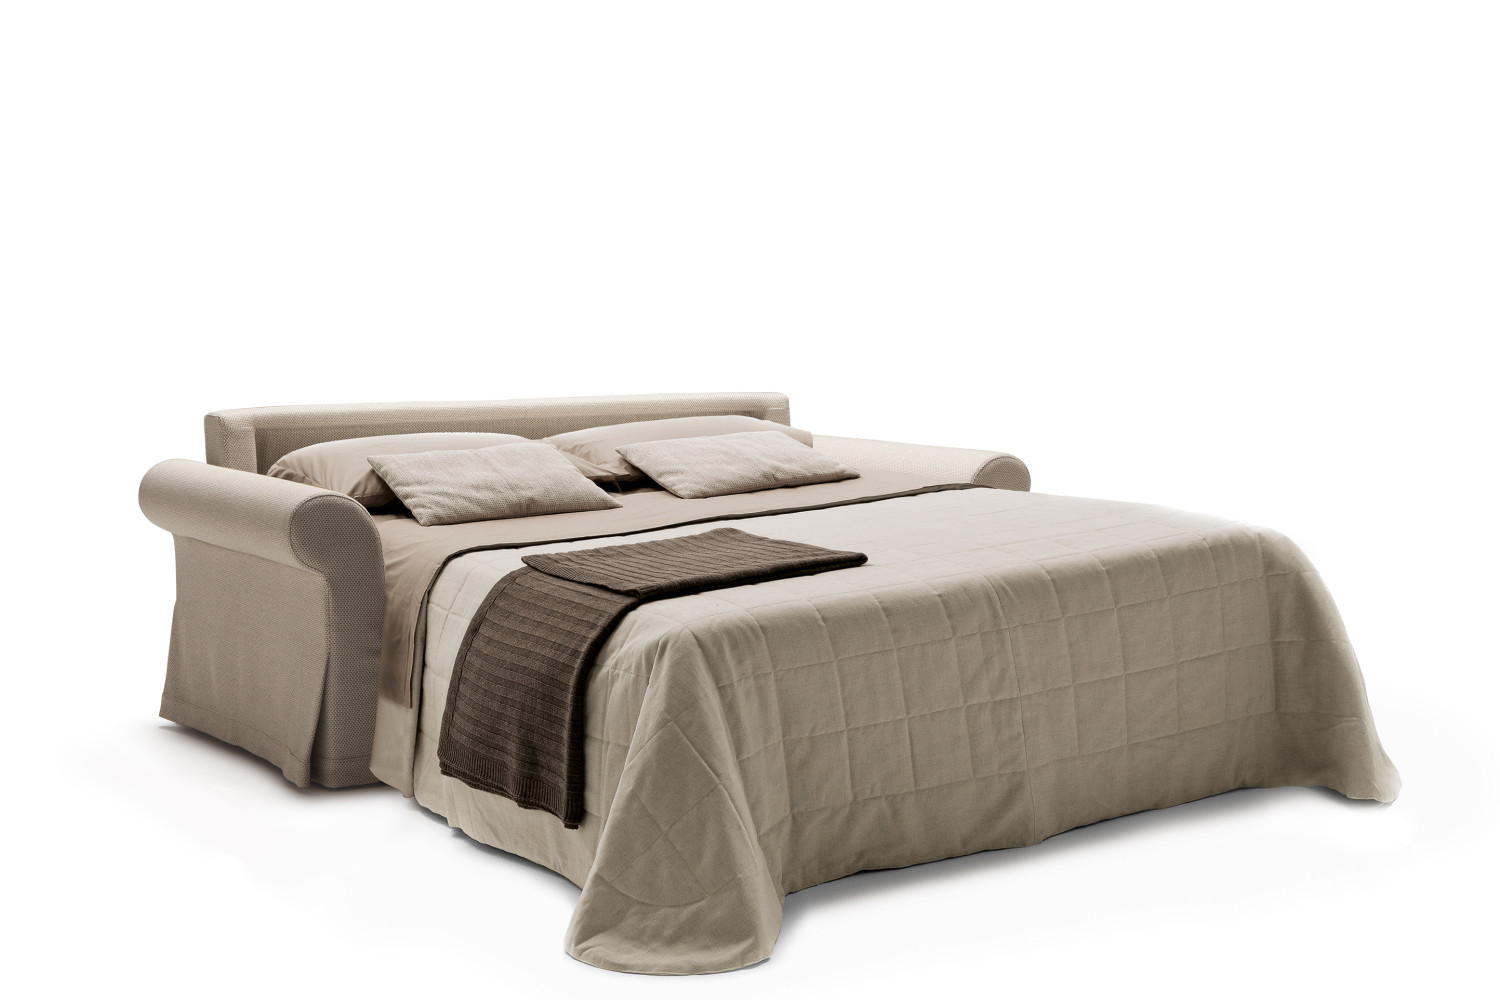 canap lit avec vrai matelas ellis. Black Bedroom Furniture Sets. Home Design Ideas